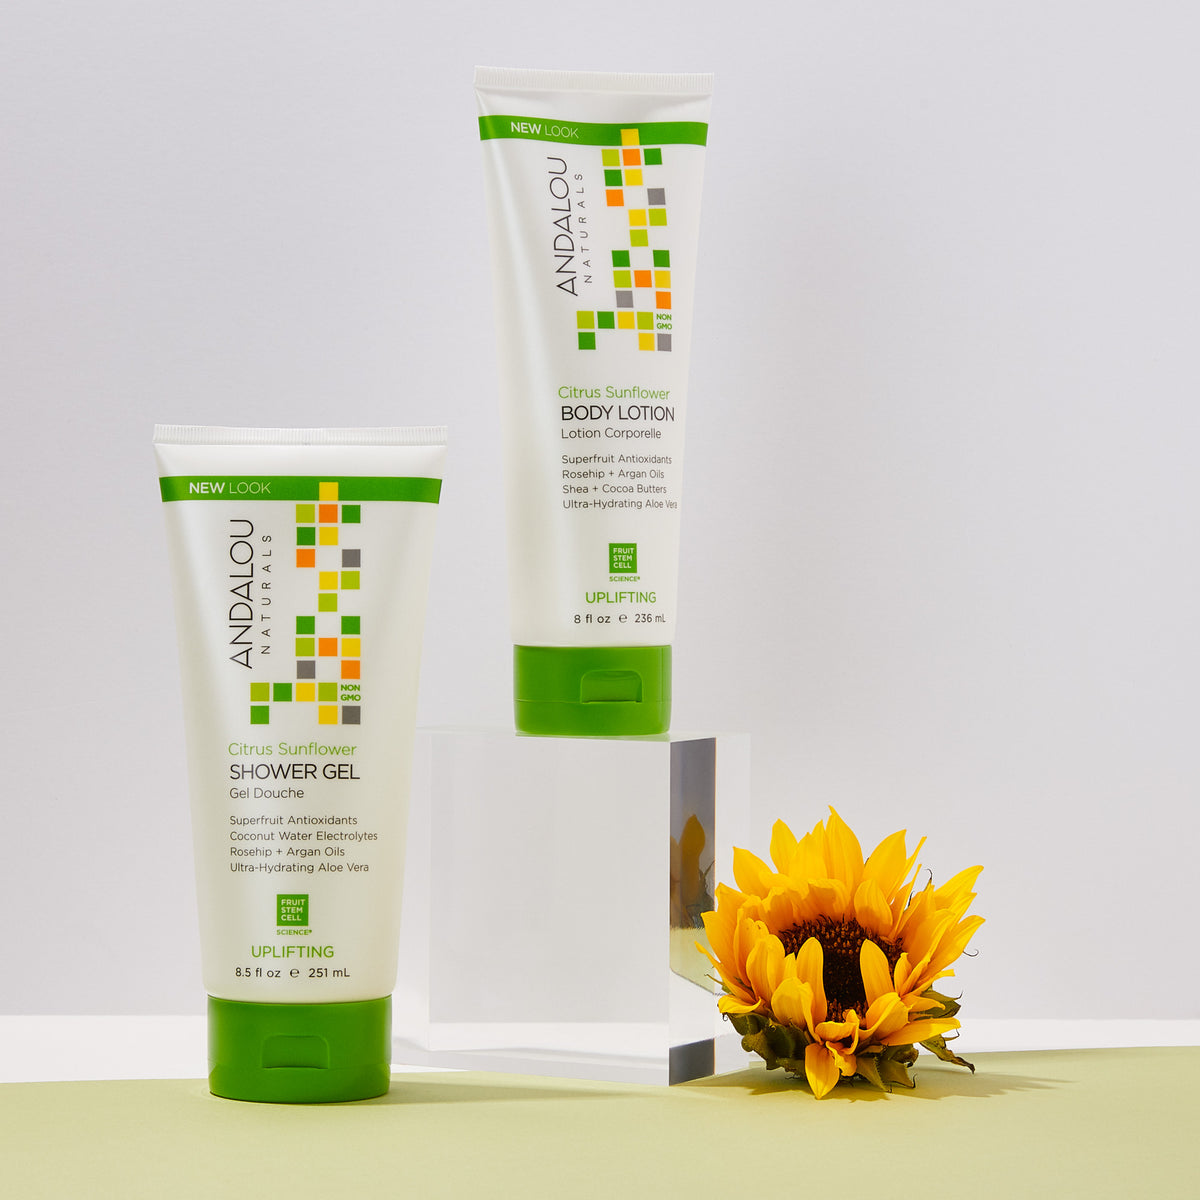 Citrus Sunflower Uplifting Shower Gel - Andalou Naturals US